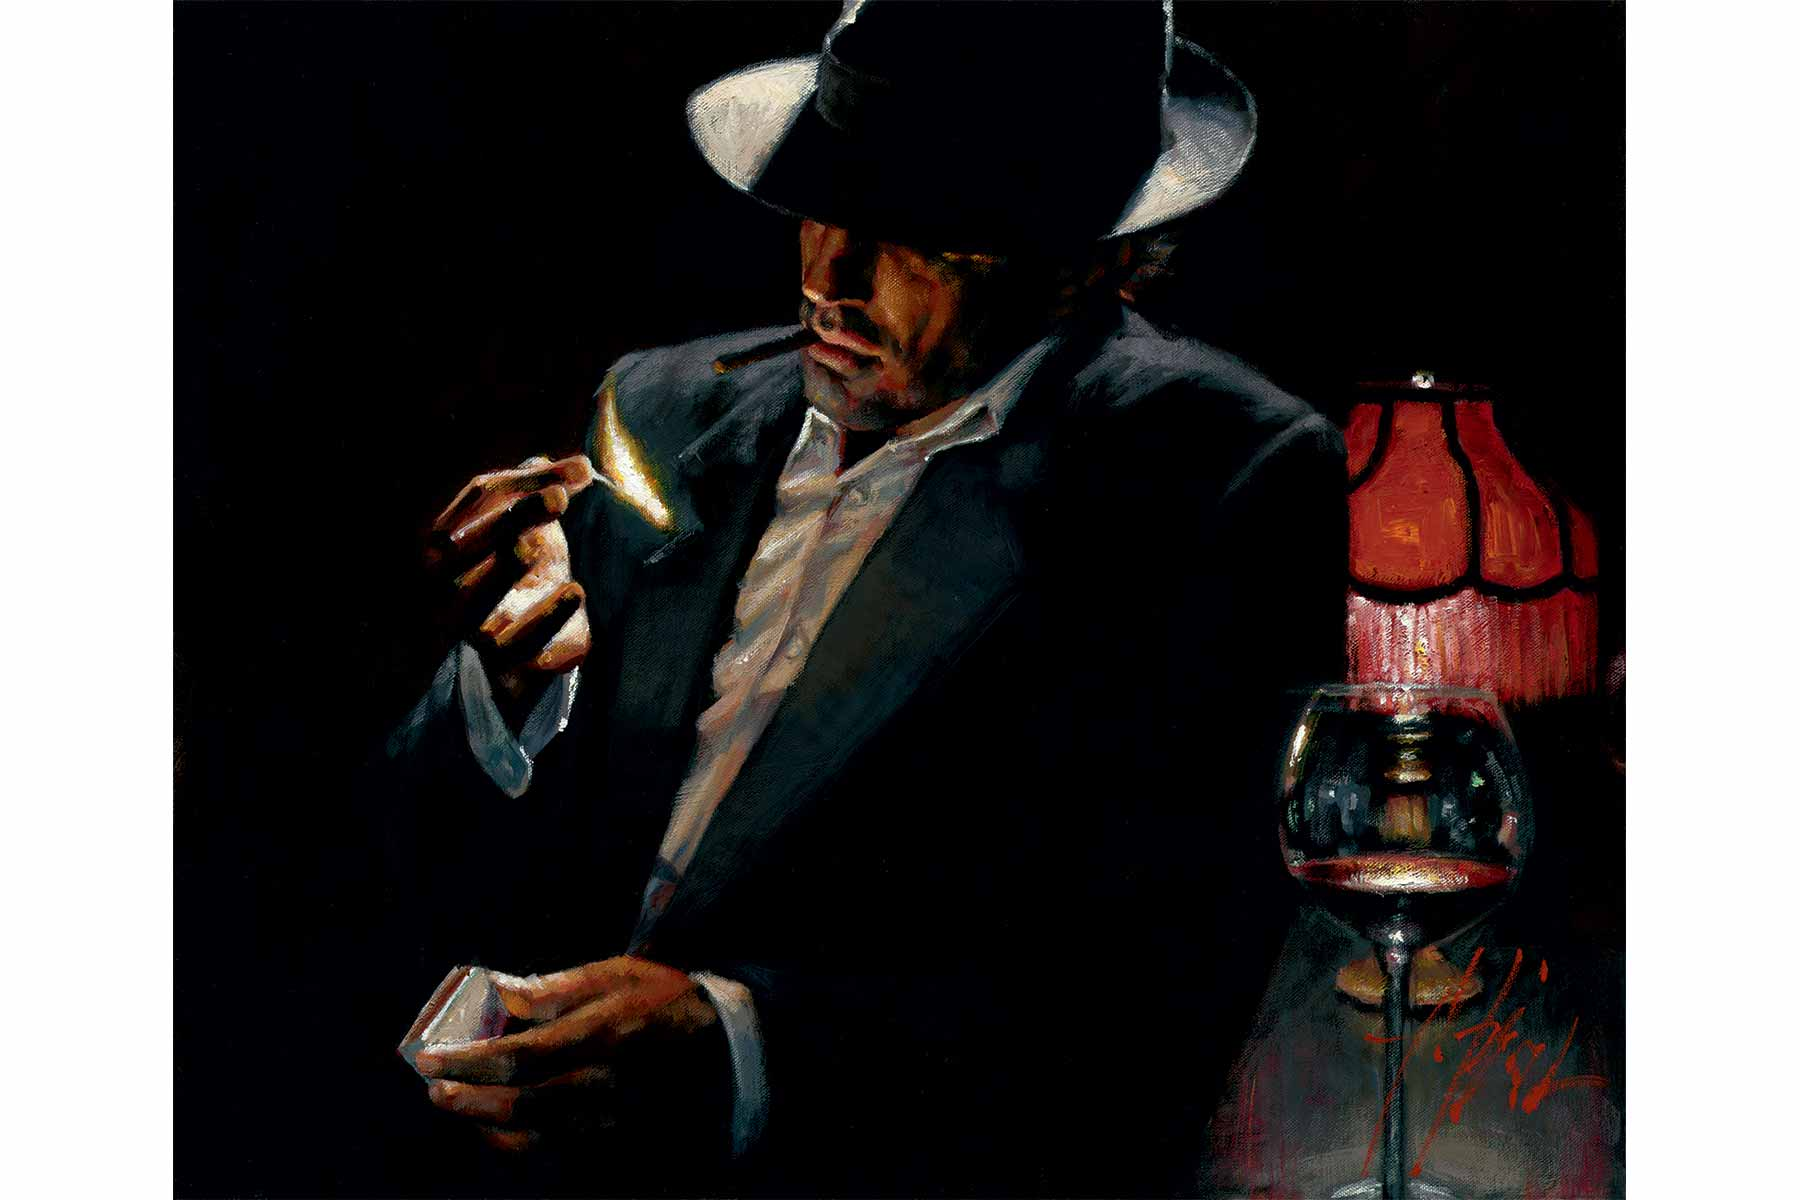 Man Lighting Cigarette II